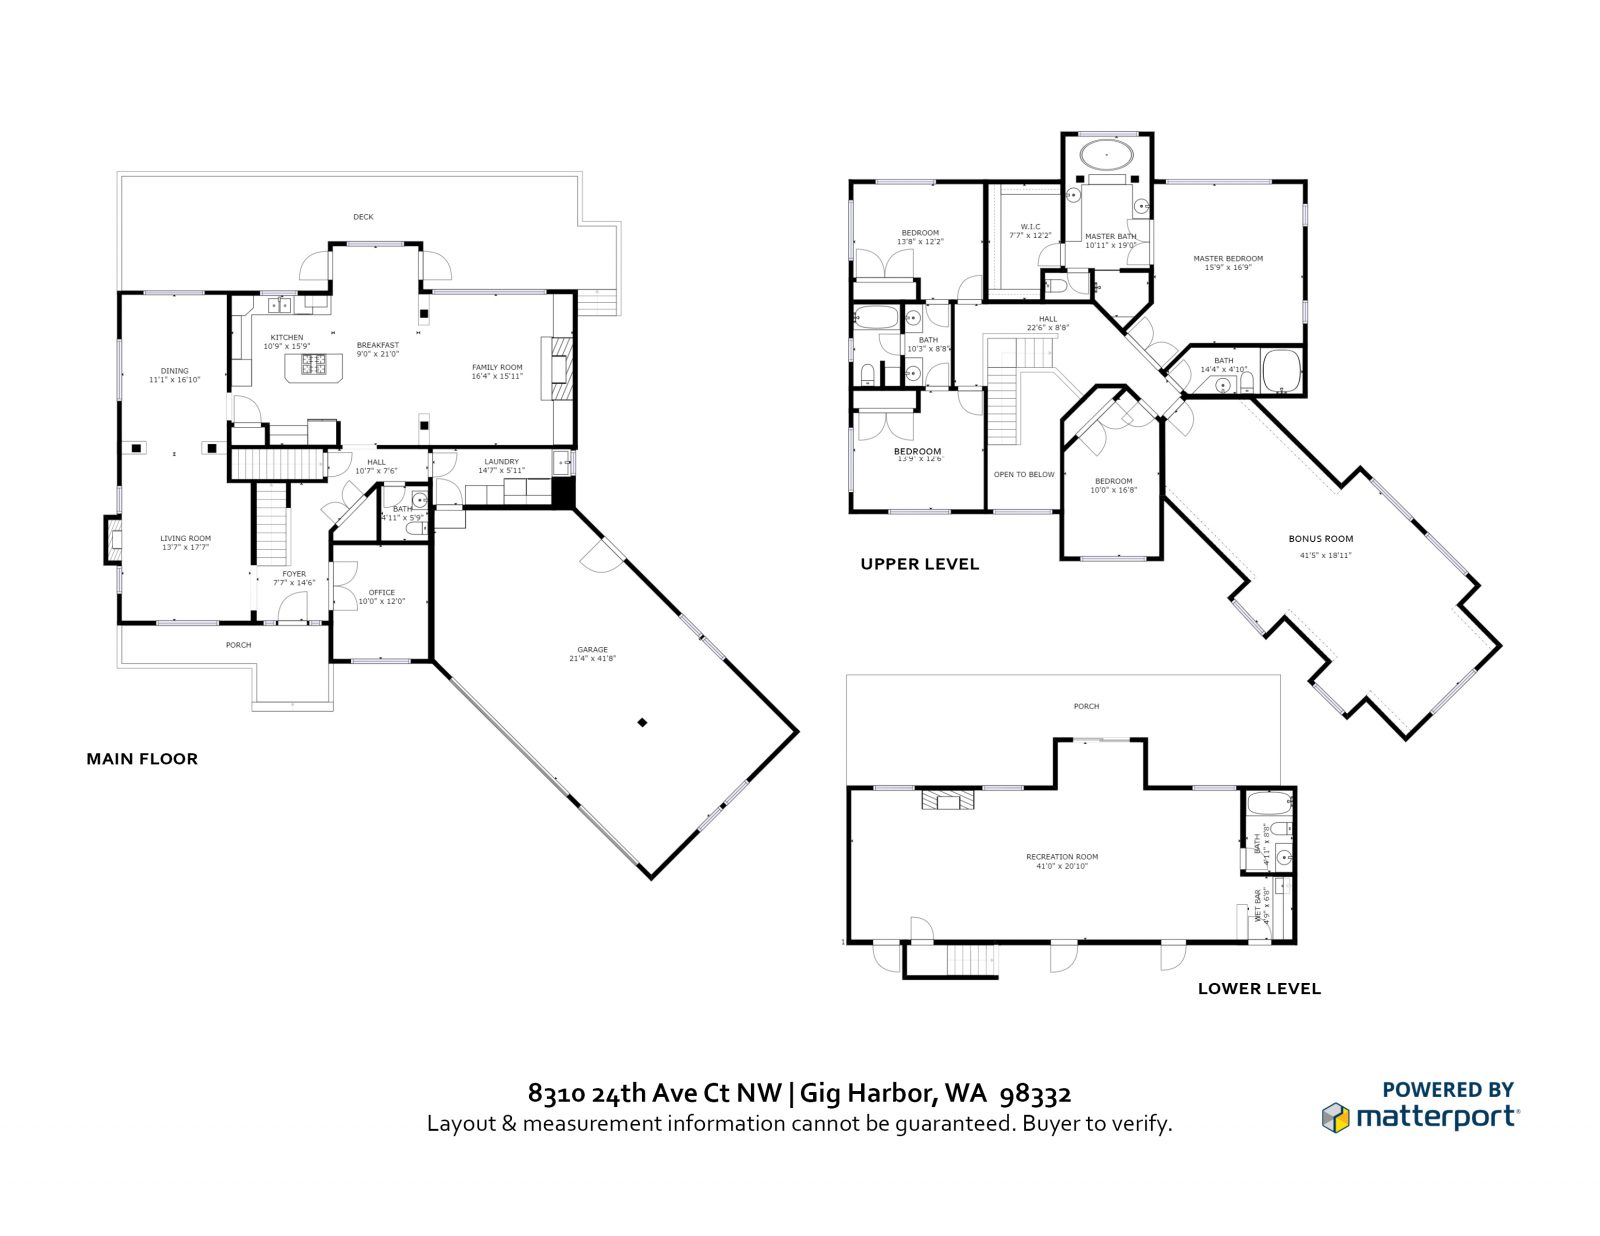 FLOOR PLAN: 8310 24th Ave Ct NW